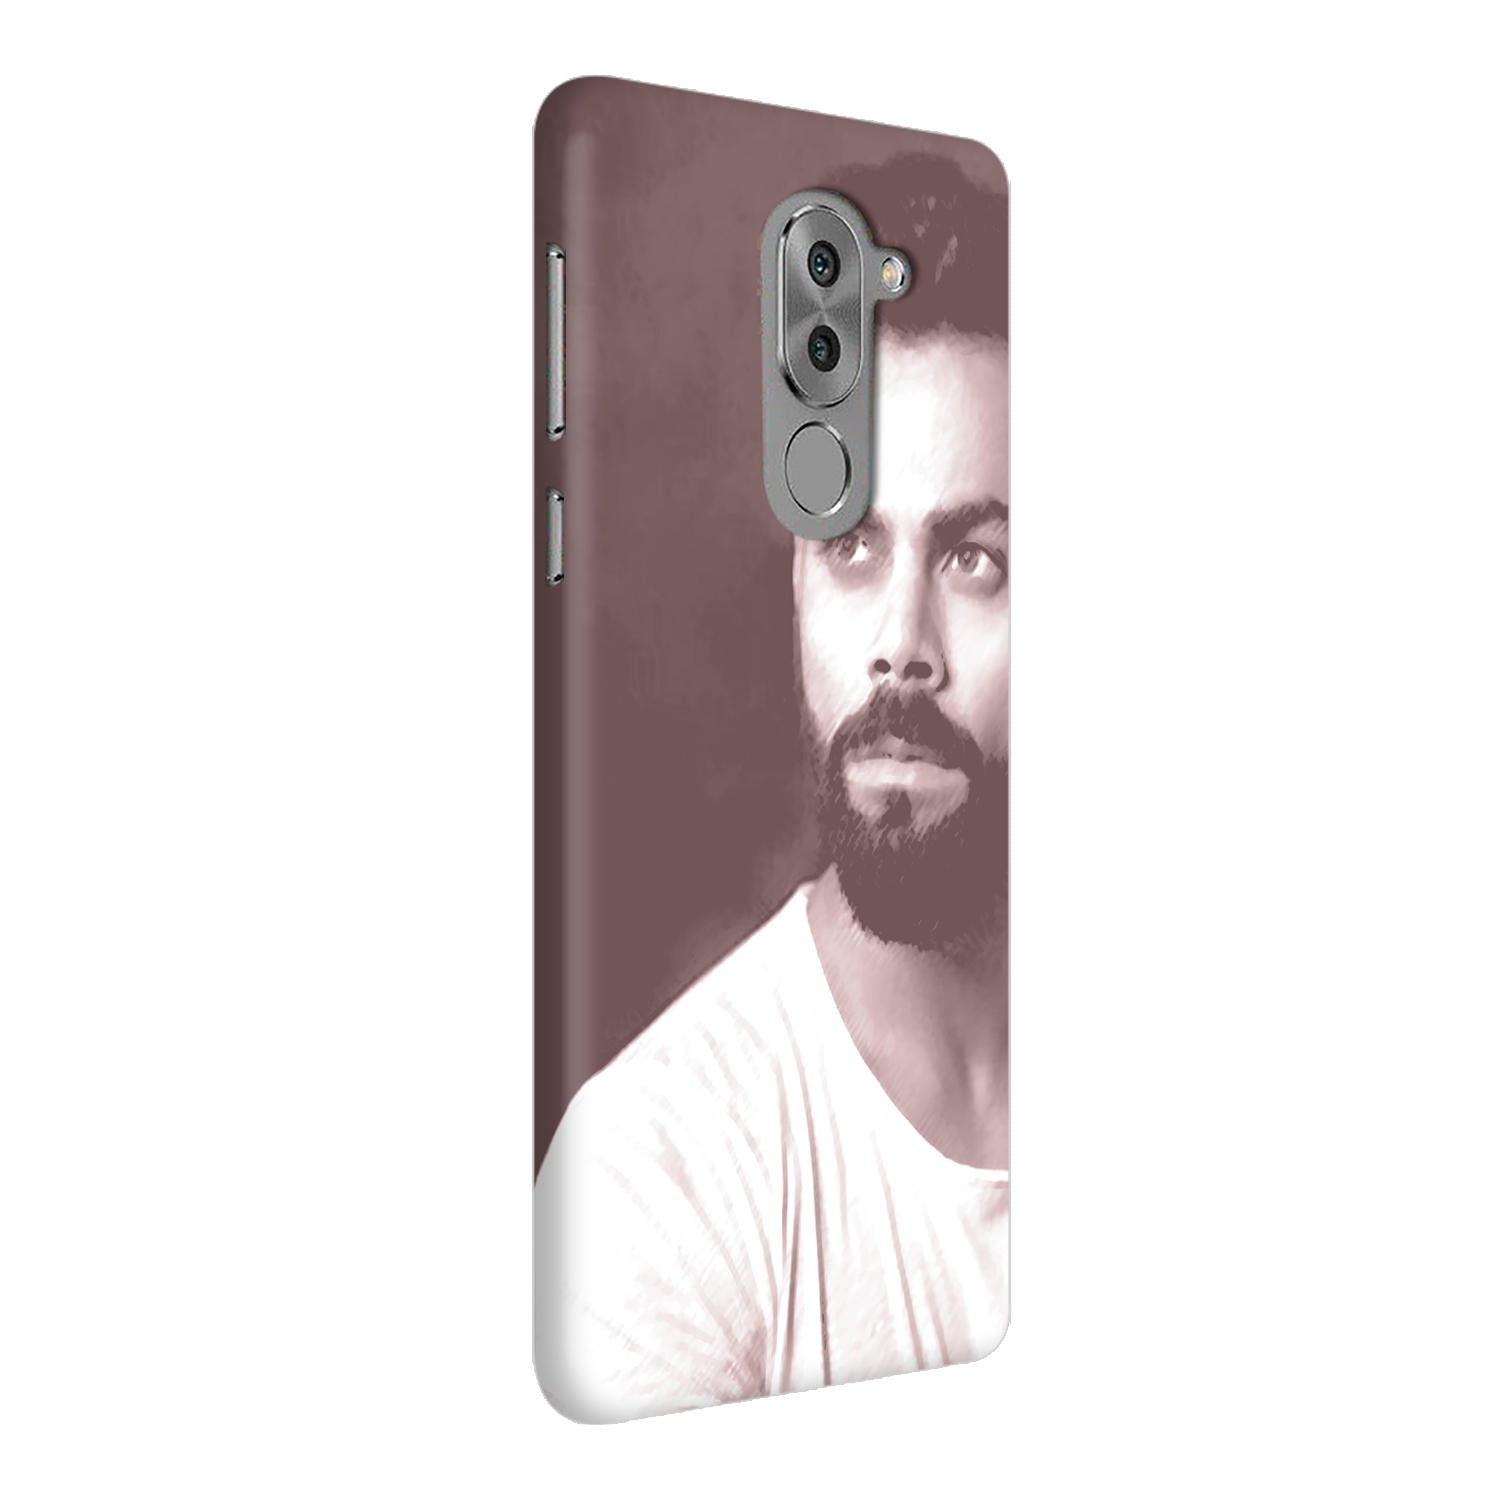 Kohli Retro Honor 6X Mobile Cover Case